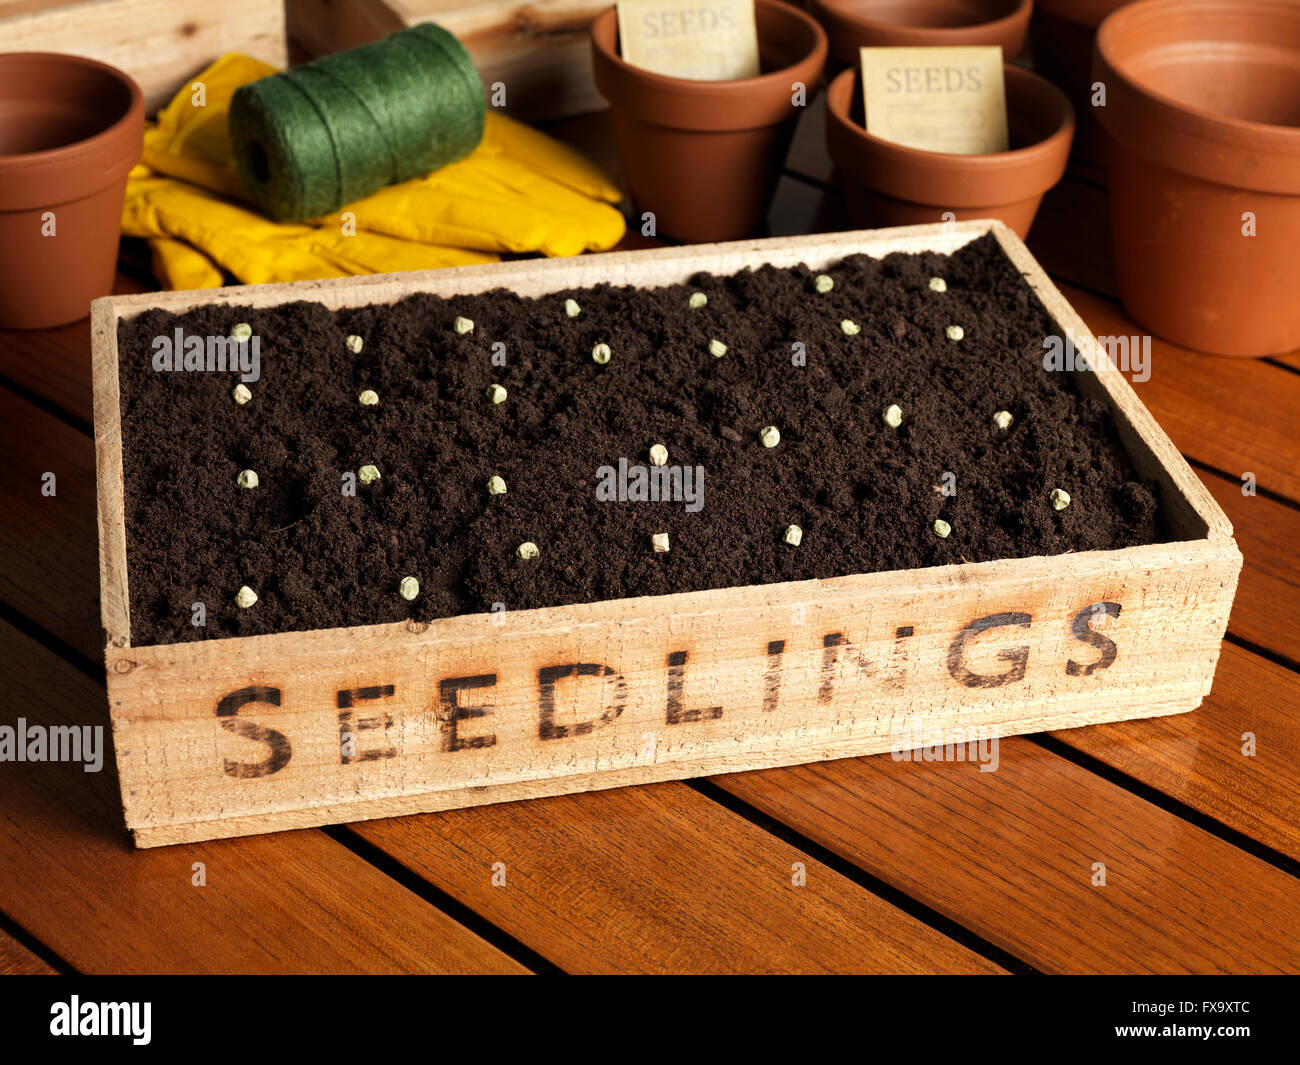 seedling box with soil - Stock Image